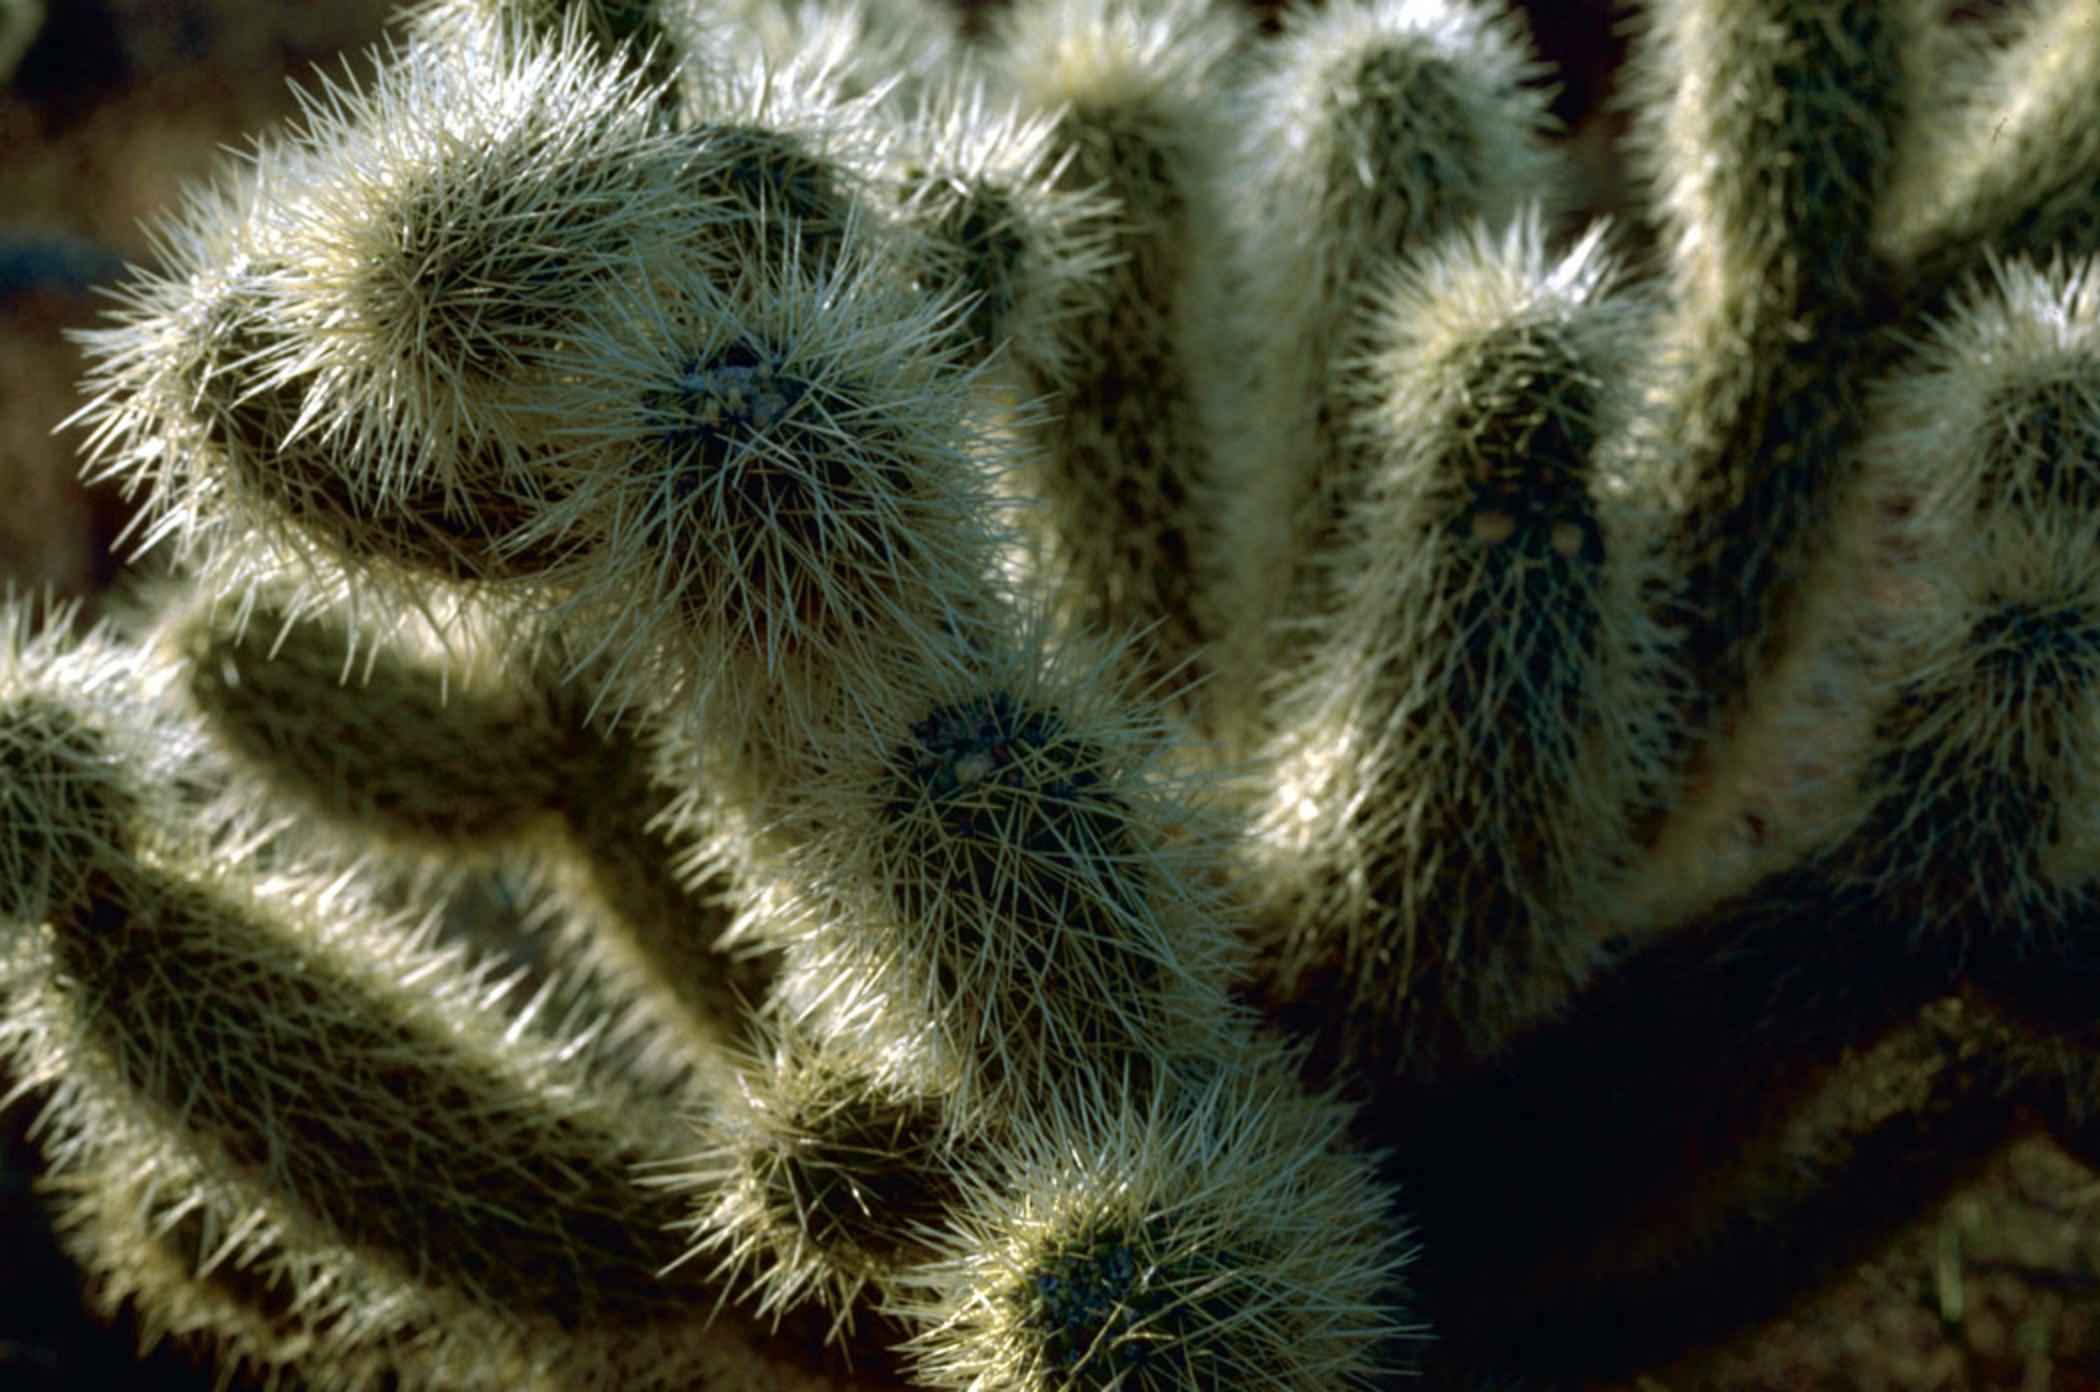 File:Teddy bear cholla cactus macro image.jpg - Wikimedia Commons